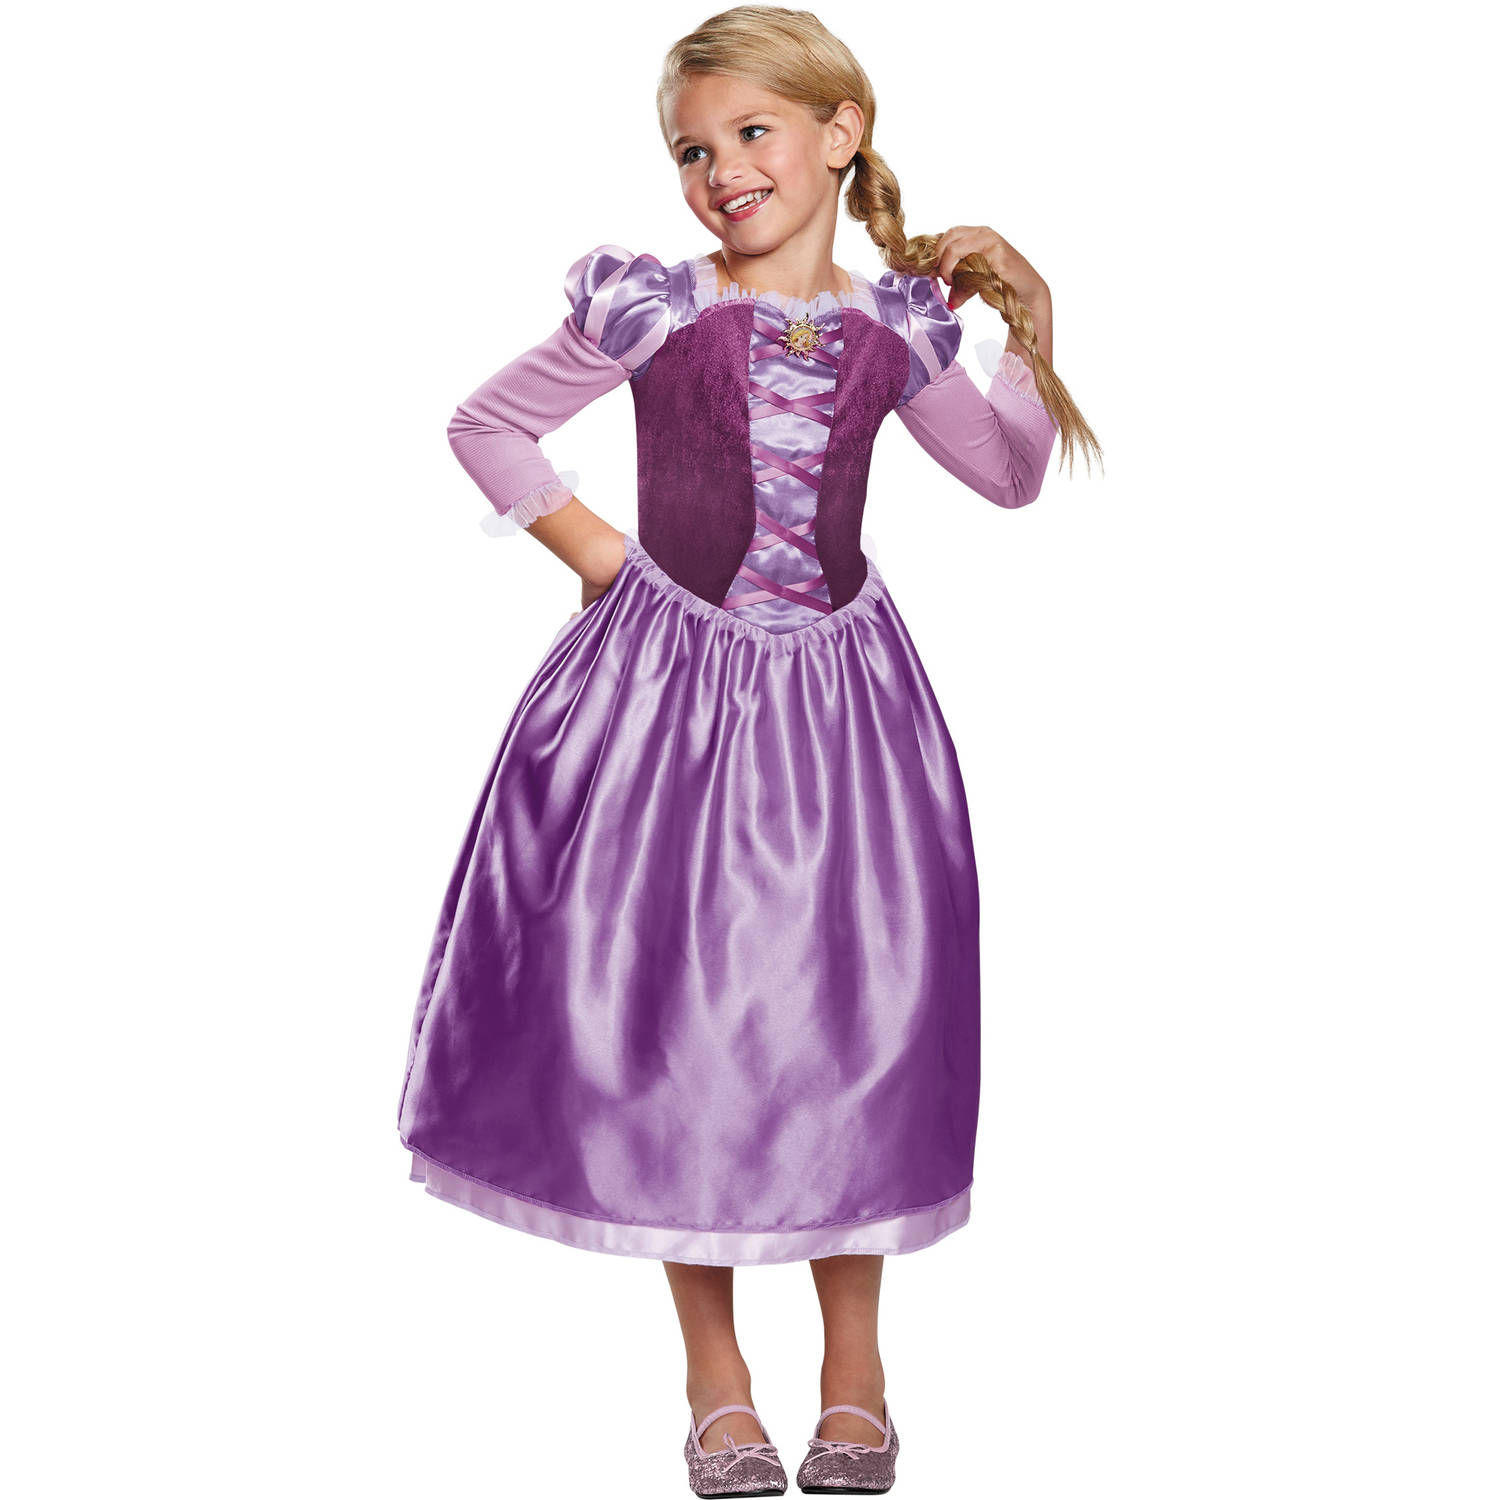 Rapunzel Day Dress Classic Girls Child Halloween Costume